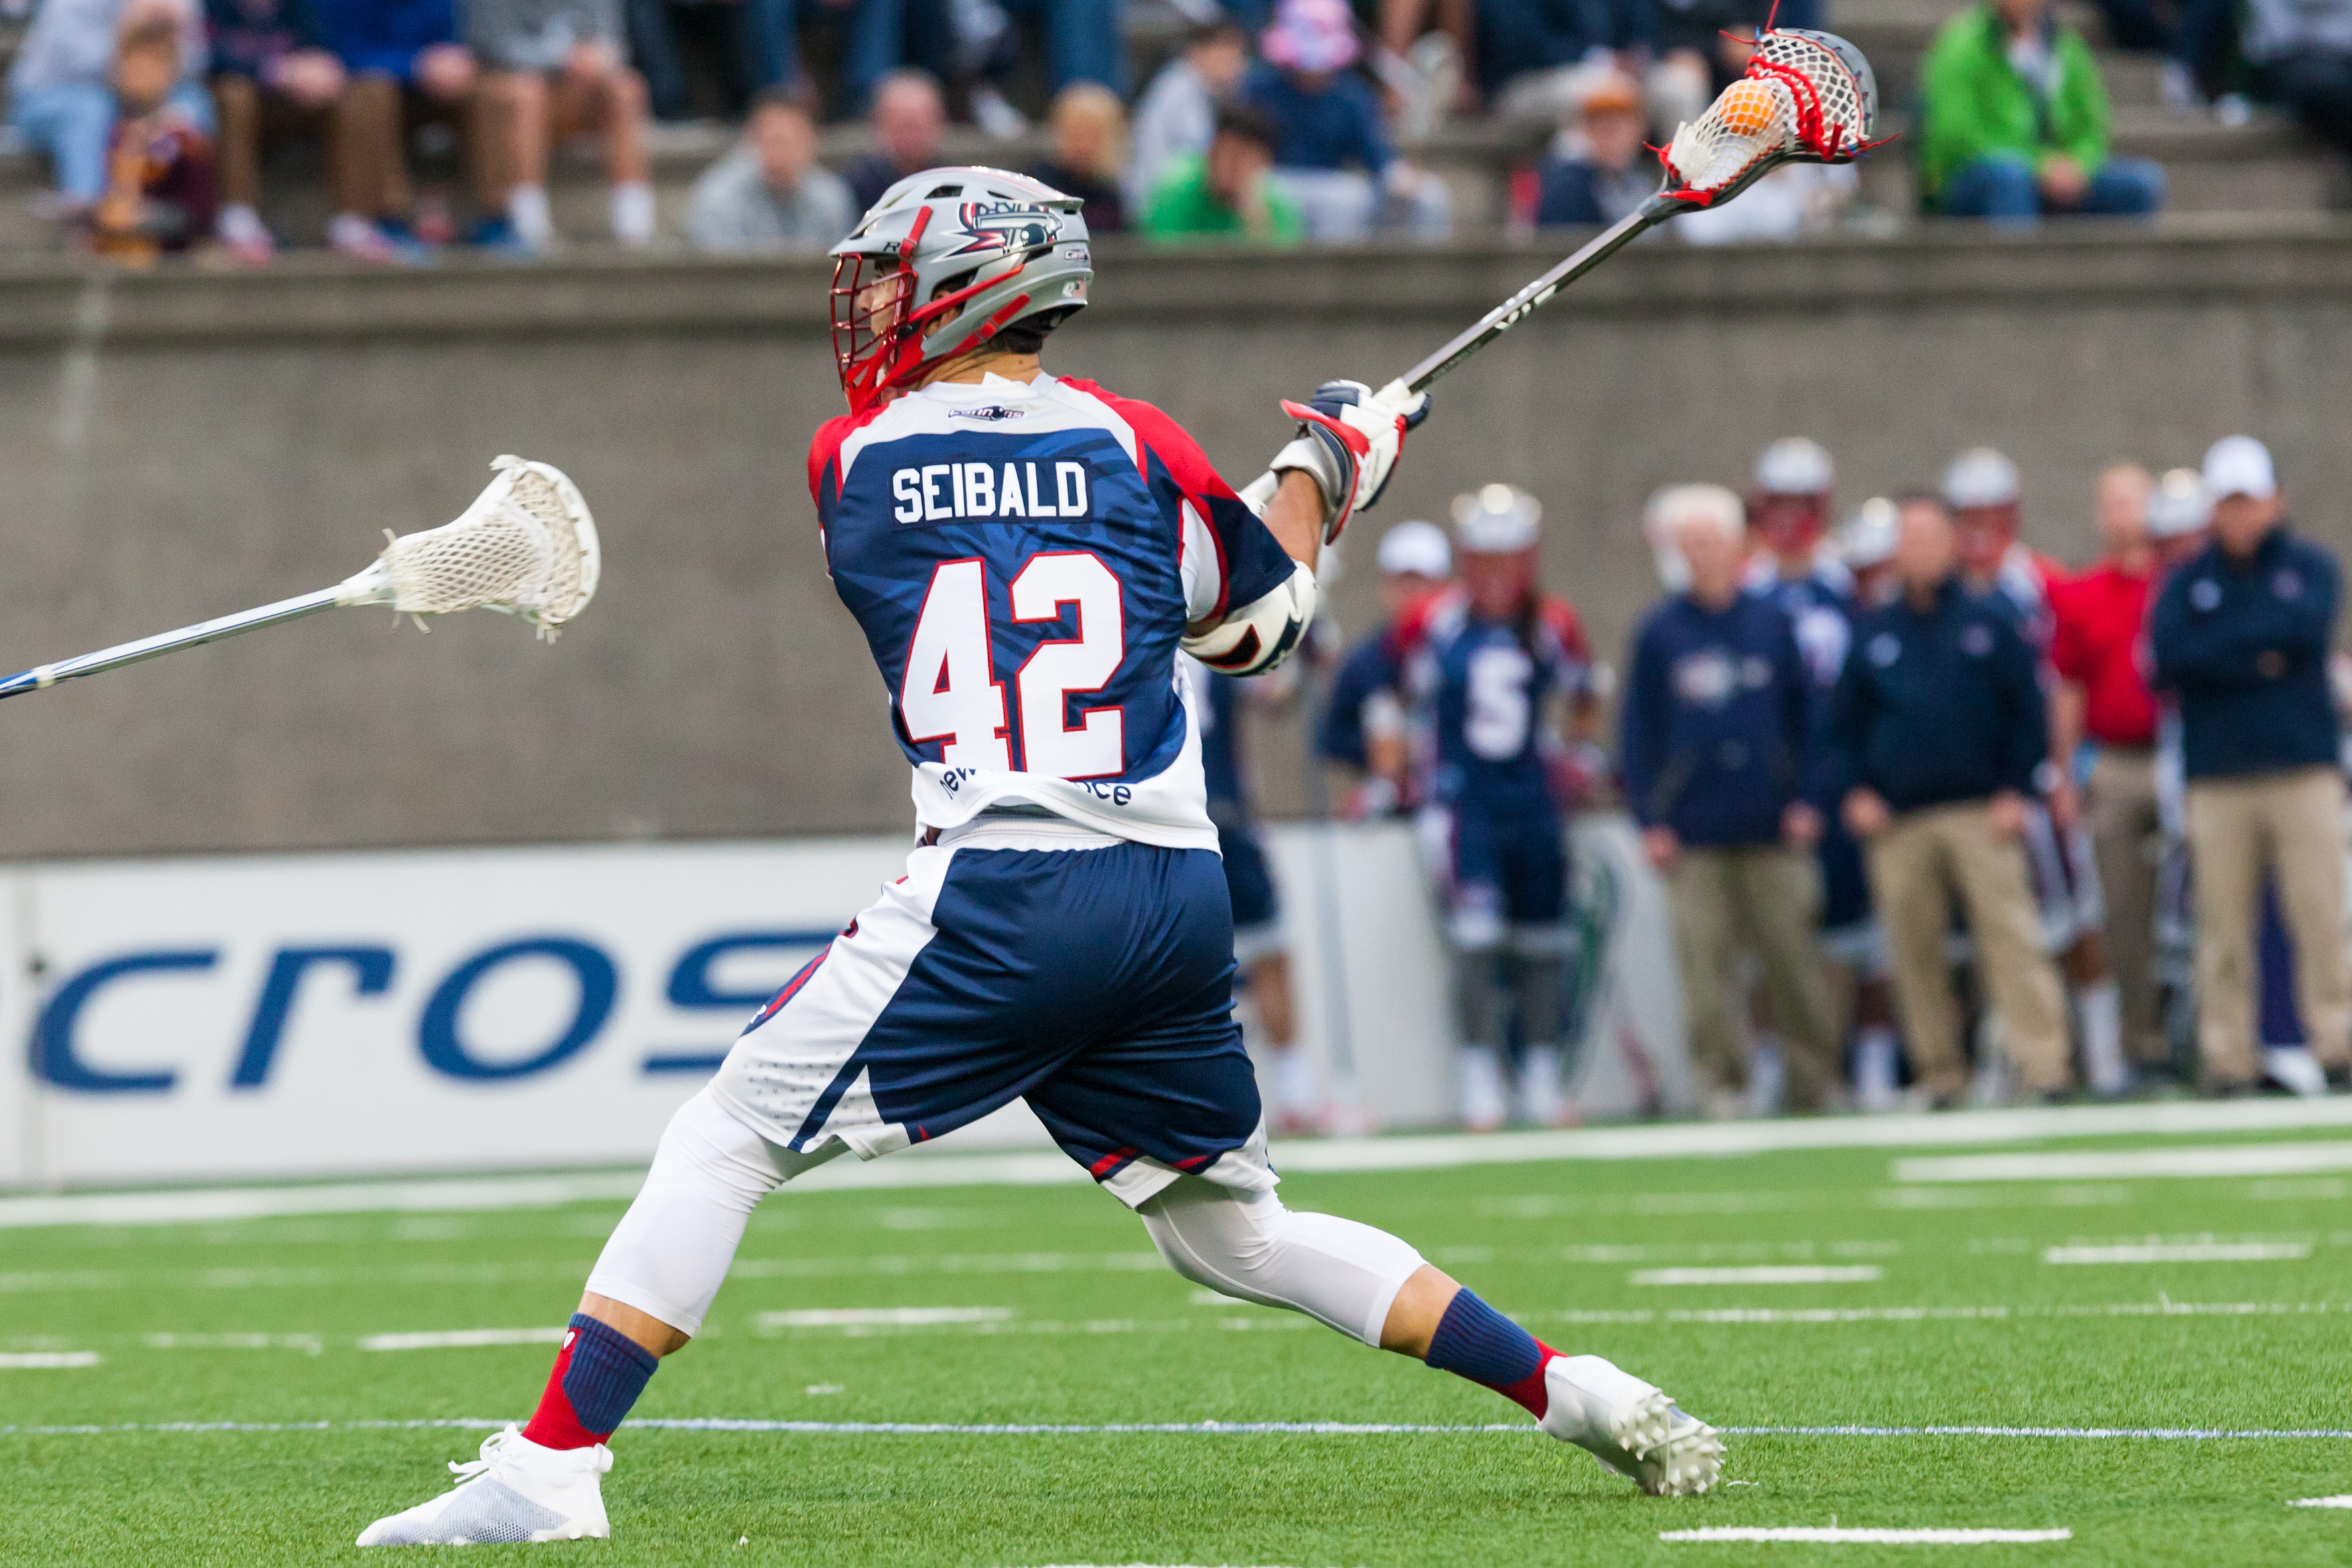 Boston Cannons Sign Max Seibald and Coach Quirk to Contra ...